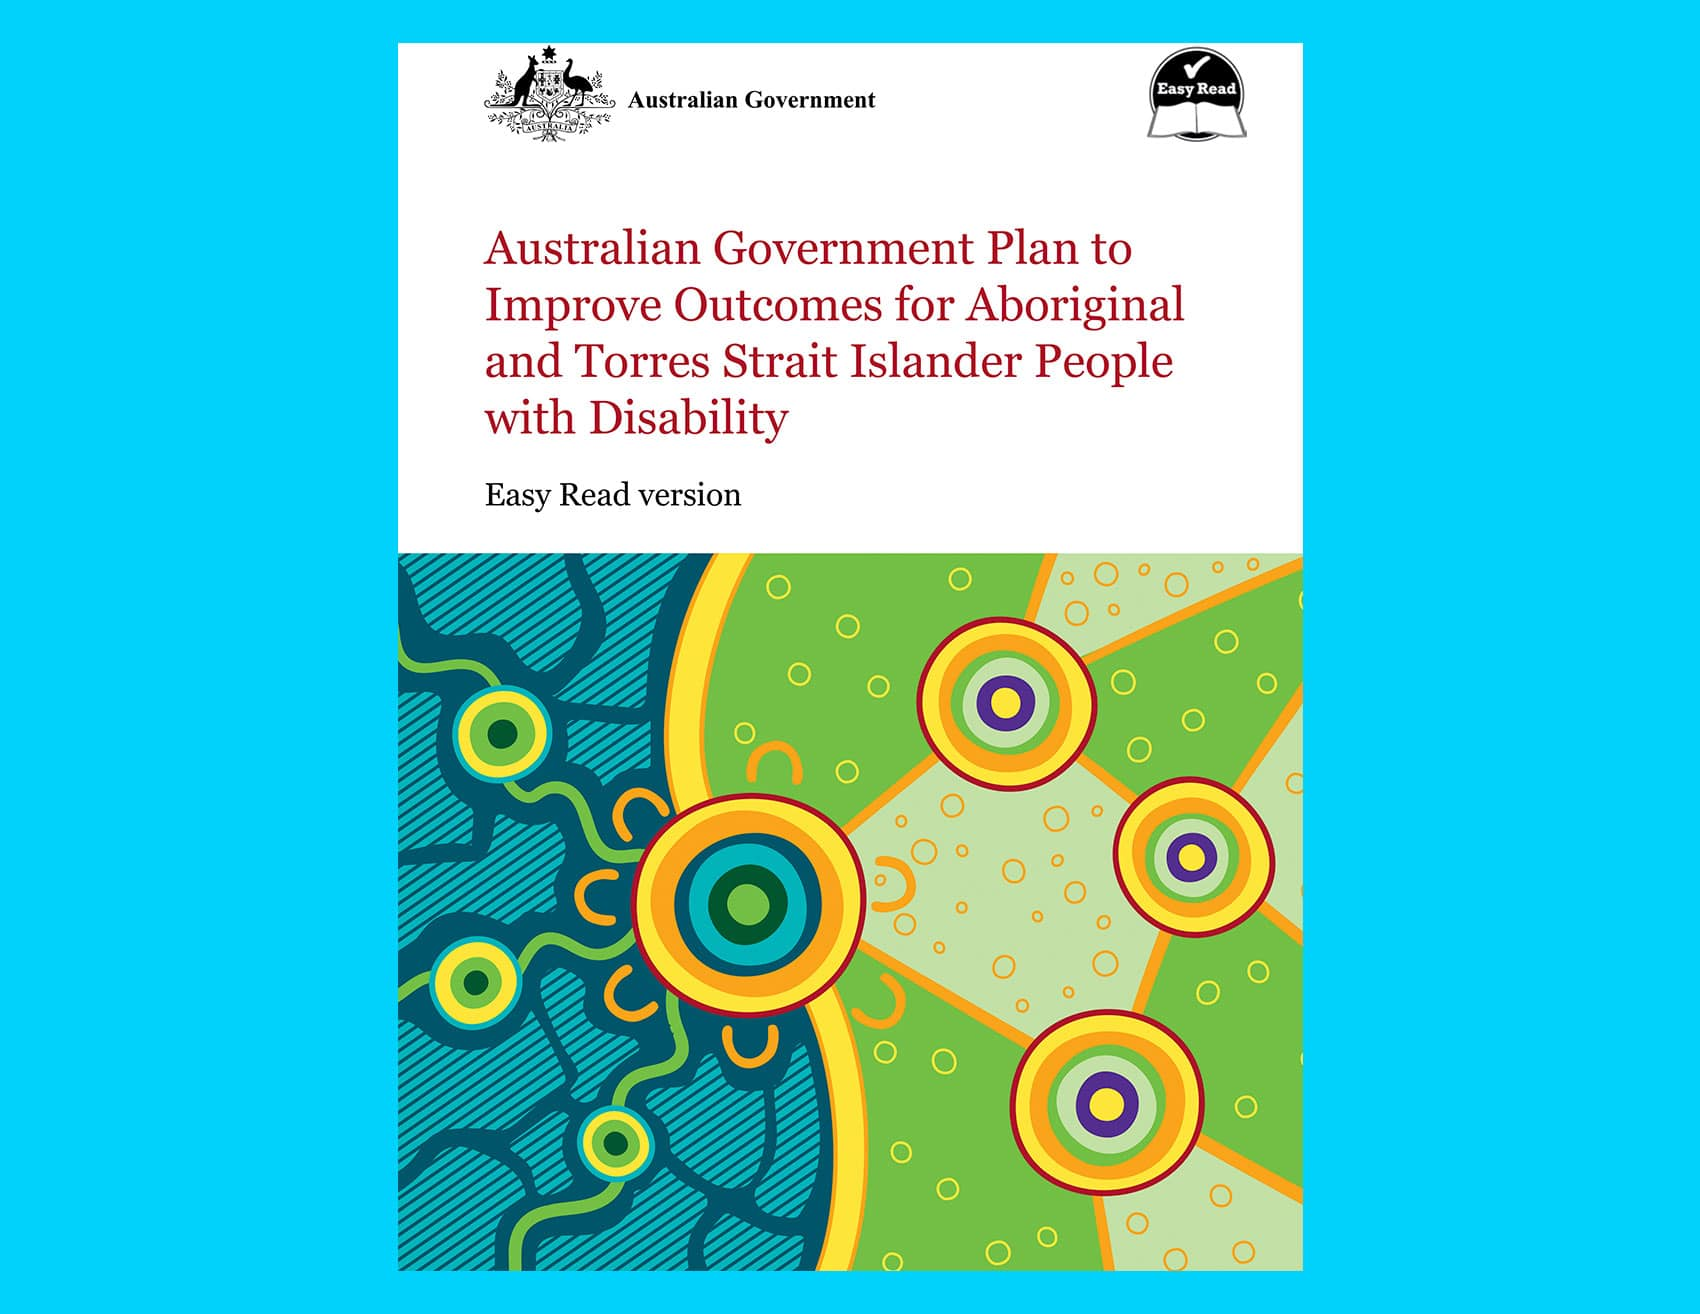 image for the ATSI disability outcomes resources